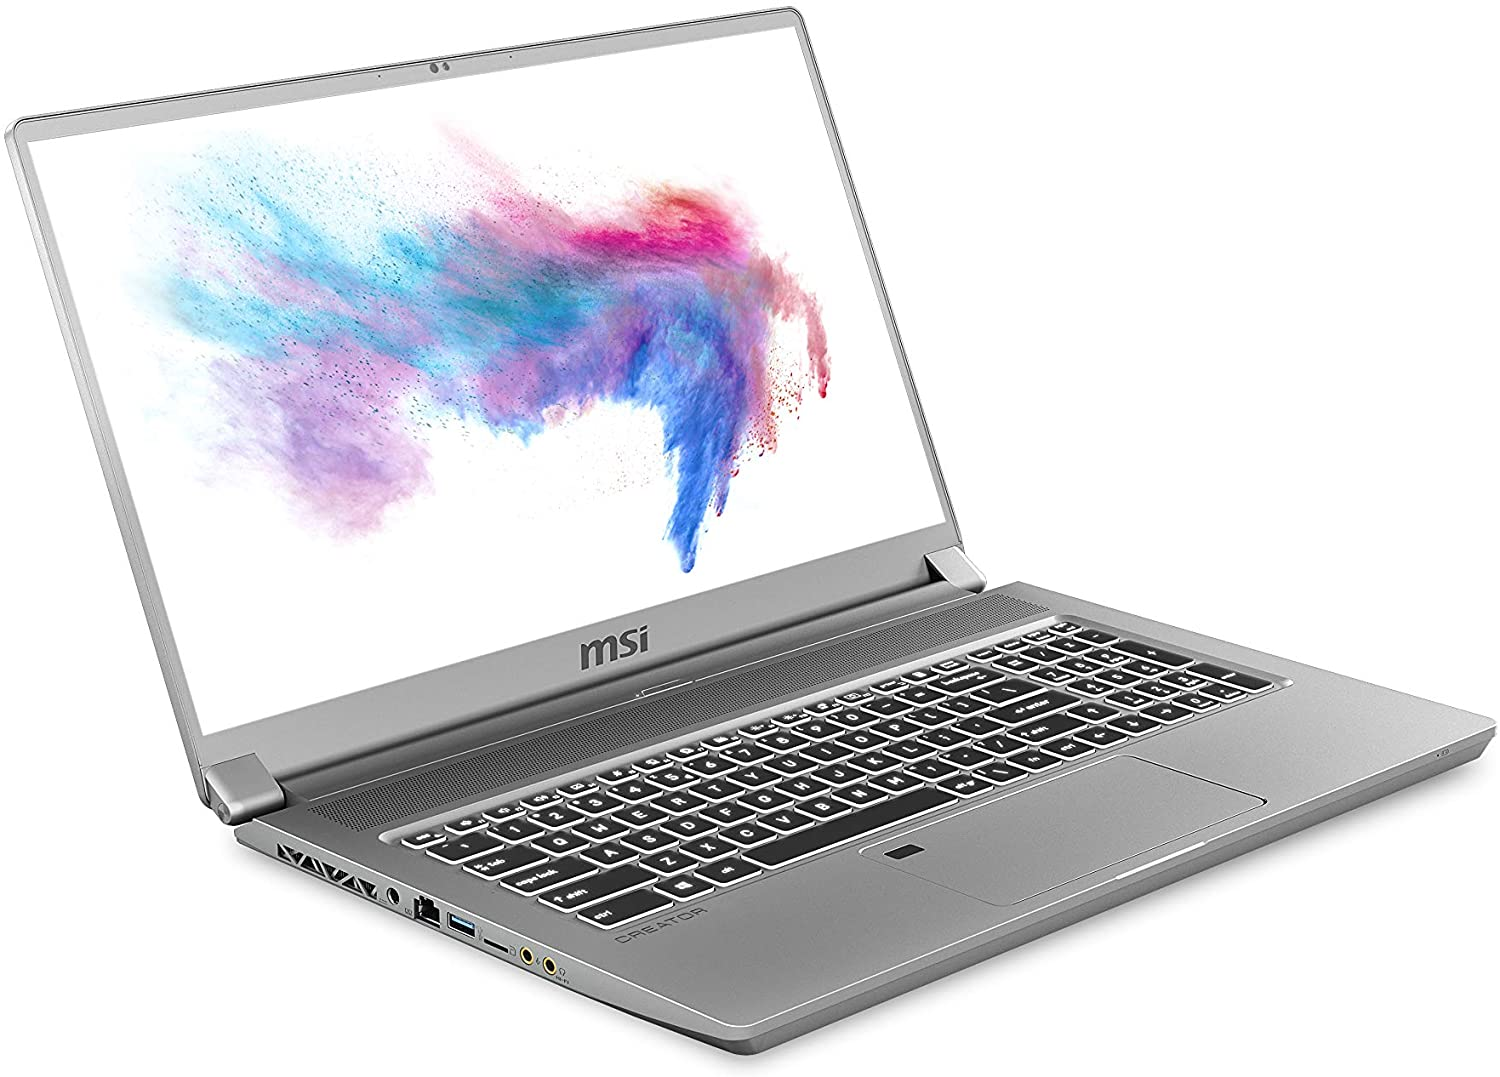 "MSI Creator 17 A10SE-256 17. 3"" FHD 144Hz 72%NTSC Thin Bezel, Close to 100%sRGB Creator Laptop Intel Core i7-10875H RTX2060 16GB 512GB NVMe SSD Win10PRO VR Ready"